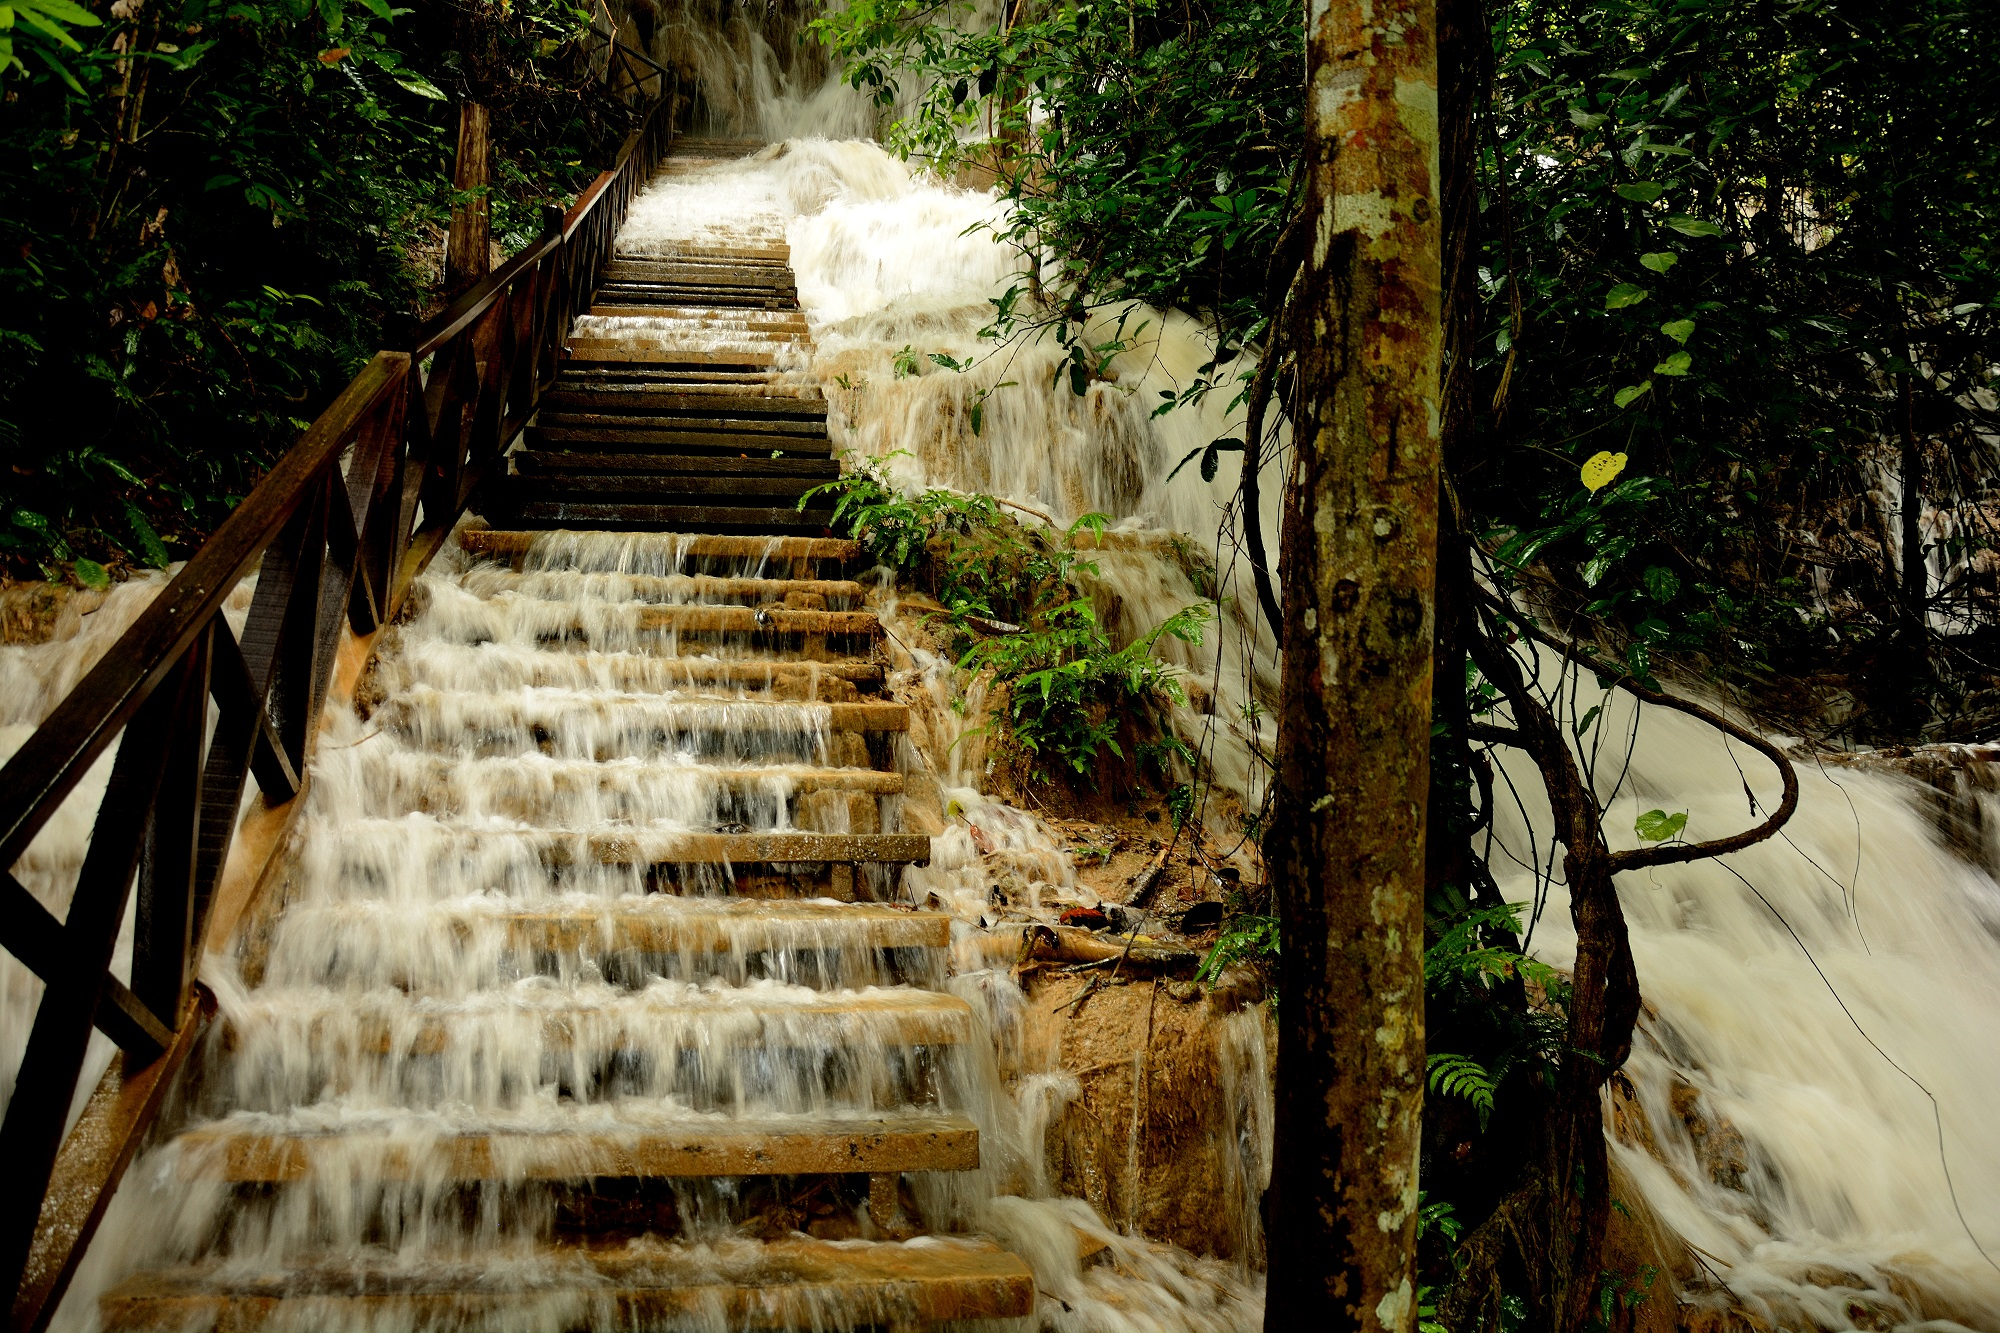 The flooded stairs leading to the top of the waterfall. It was quite an experience!